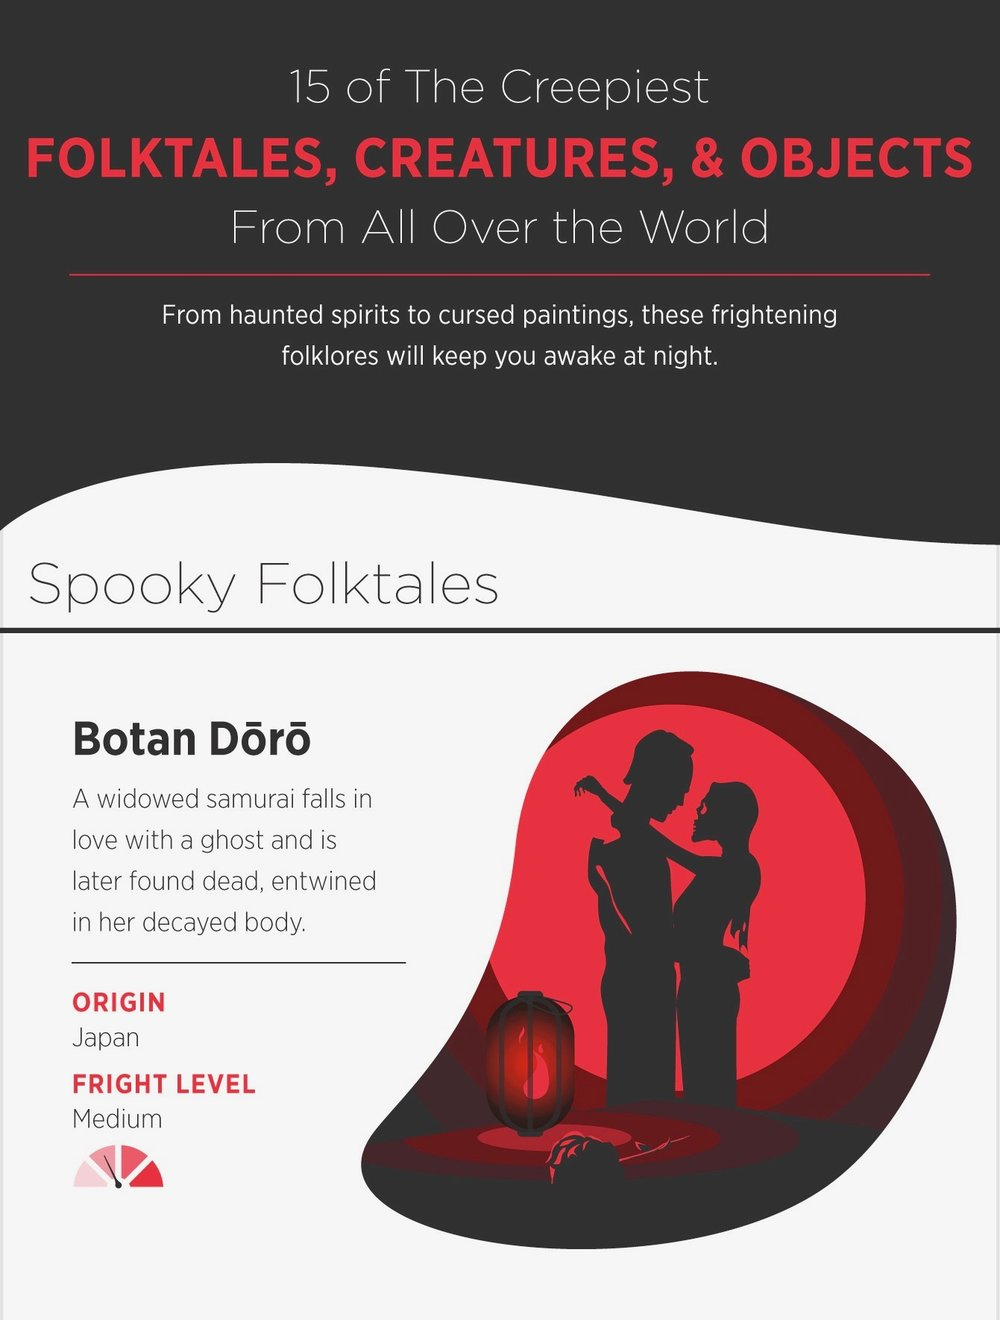 Spooky folktales, creatures, and objects from around the world